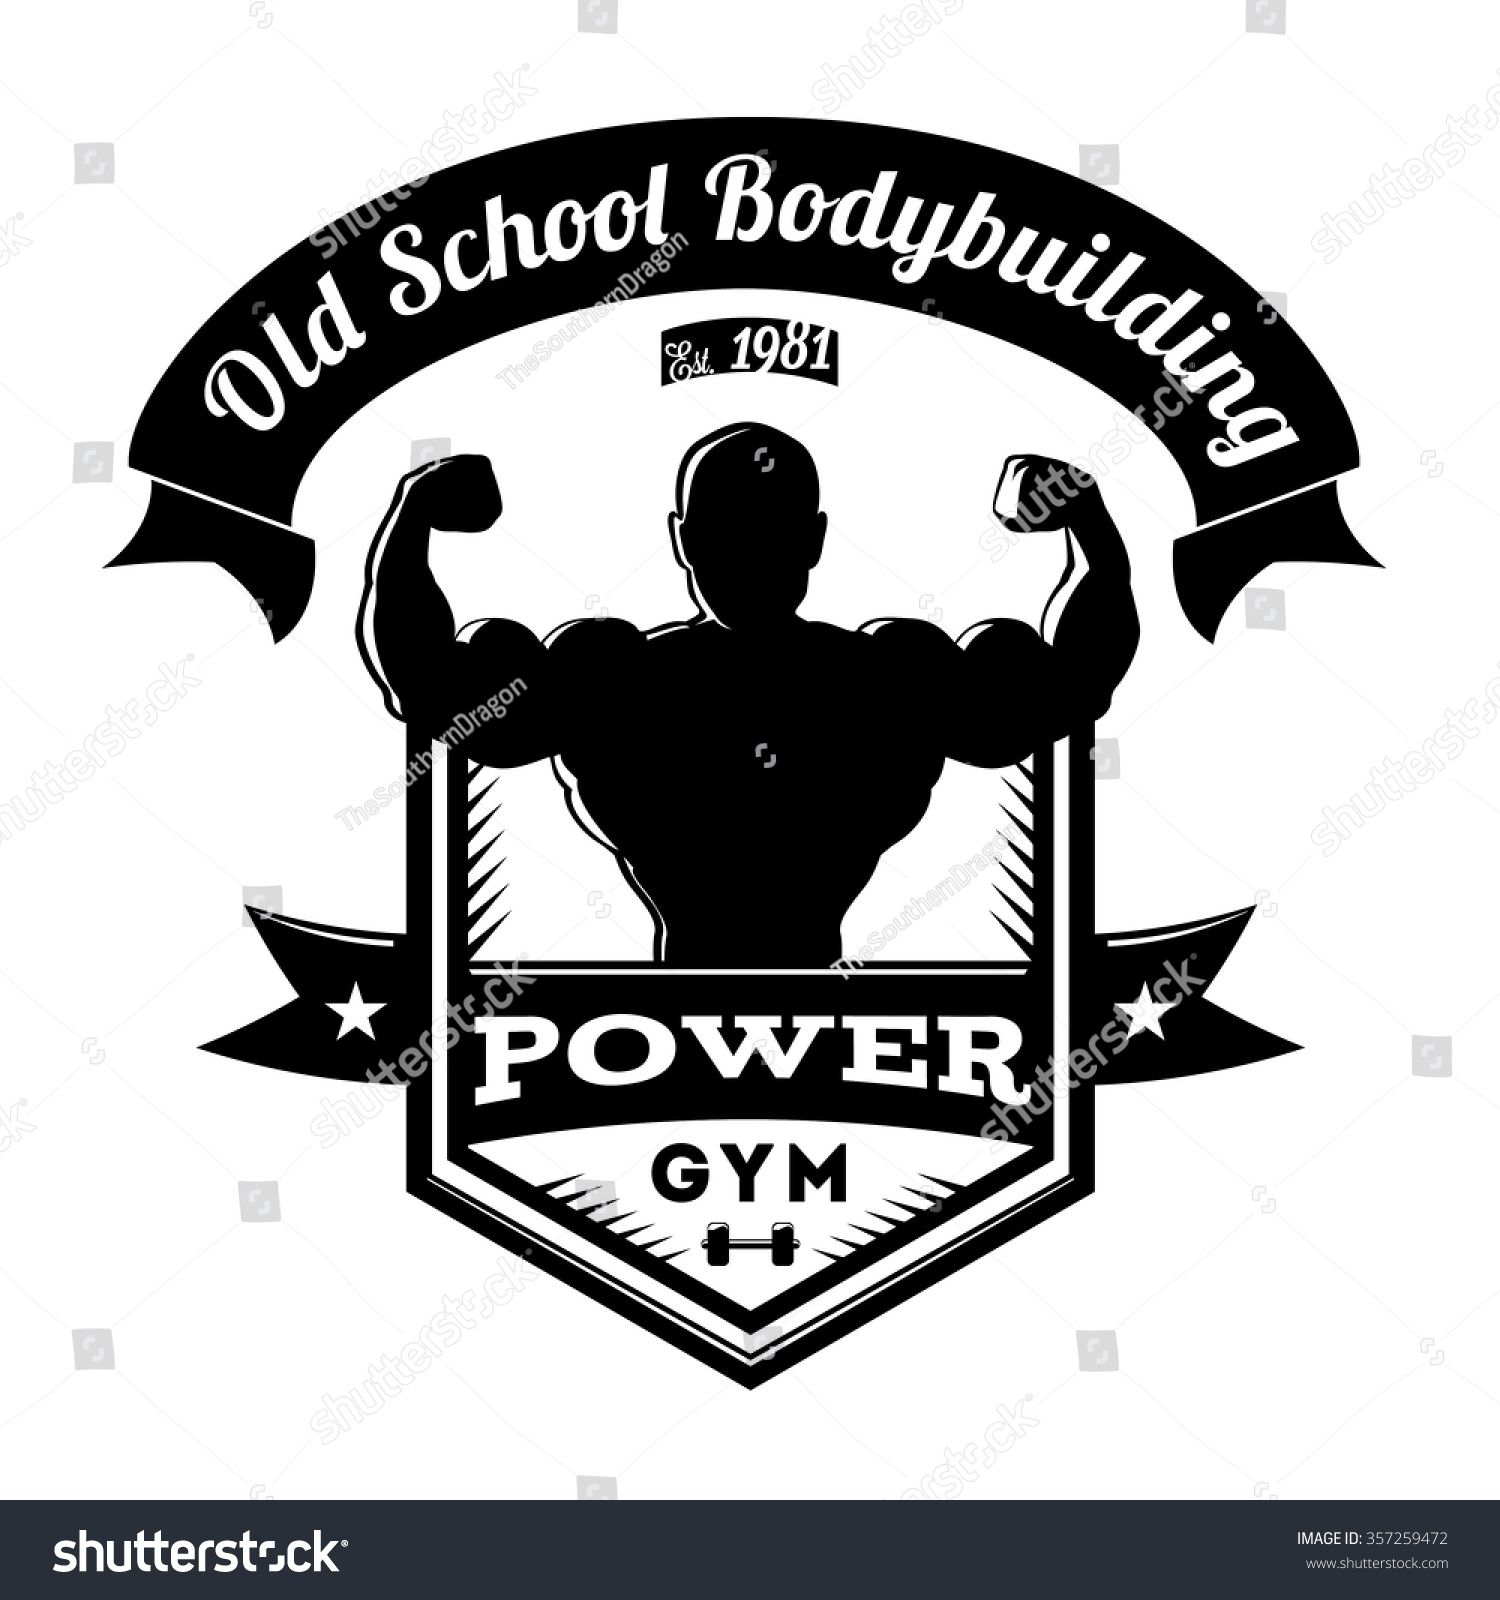 Bodybuilding Gym Logos Old school bodybuilding gym logo stock vector